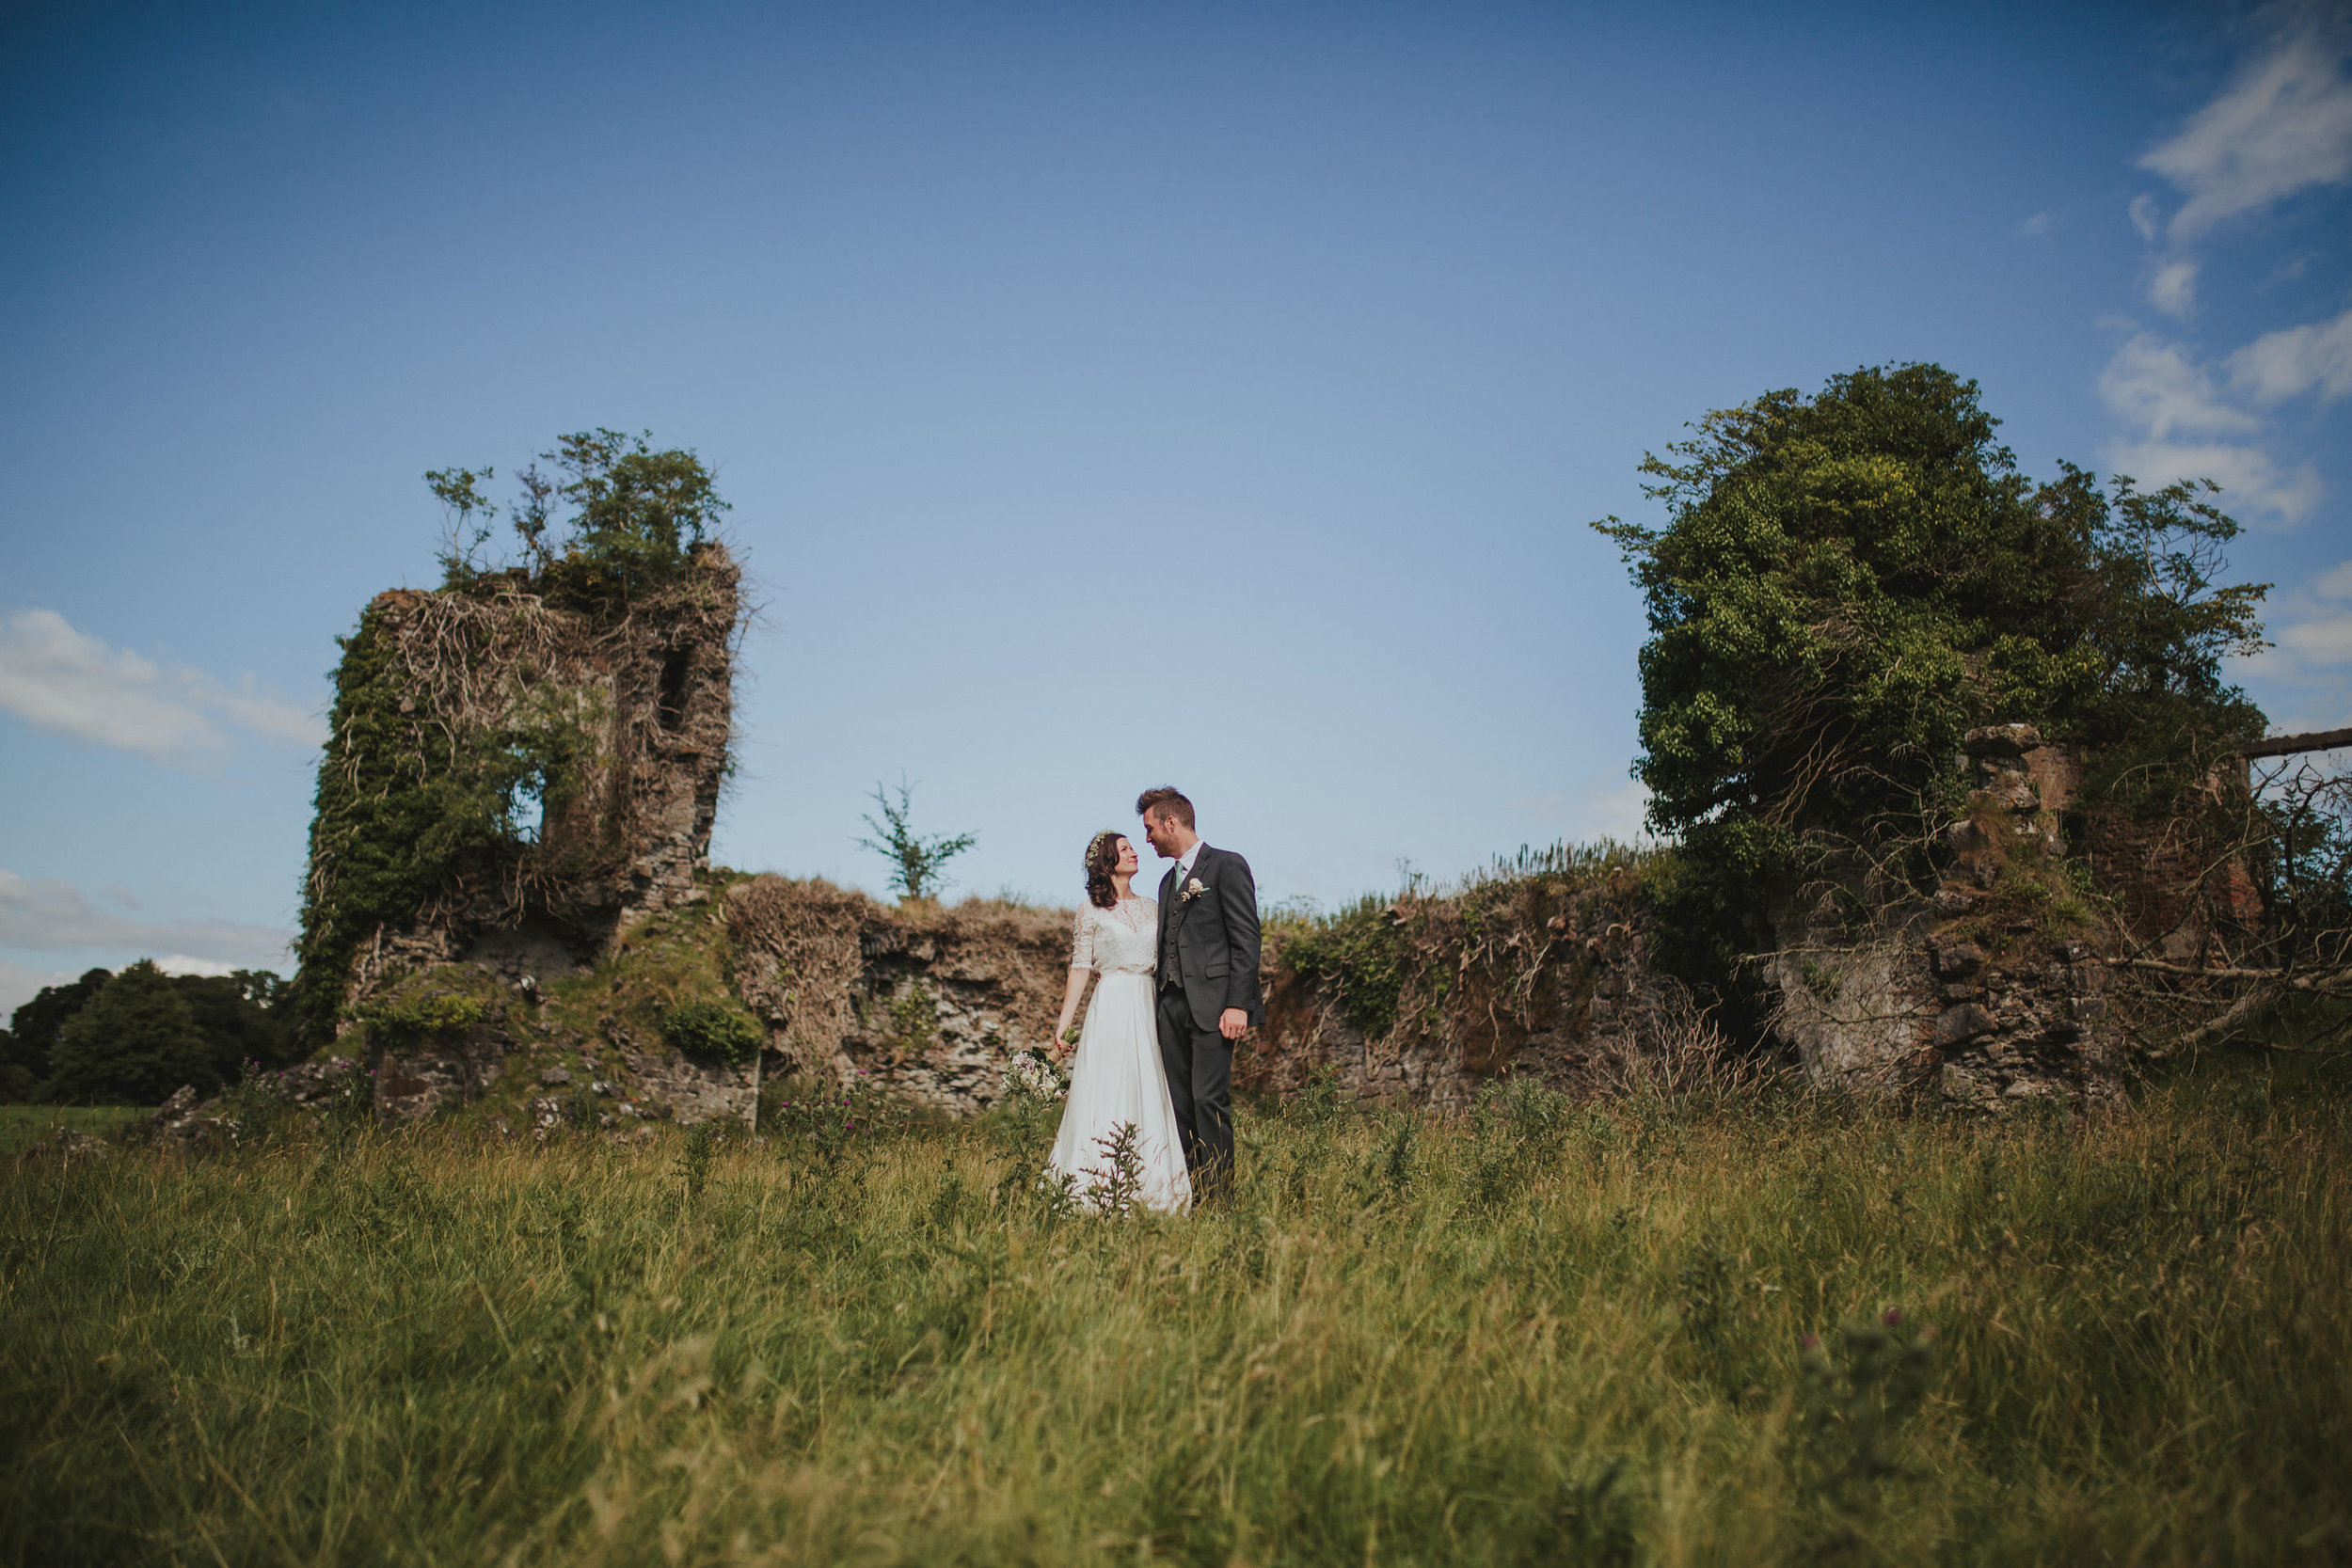 a+s_temple_house_sligo_wedding_livia_figueiredo_795.jpg